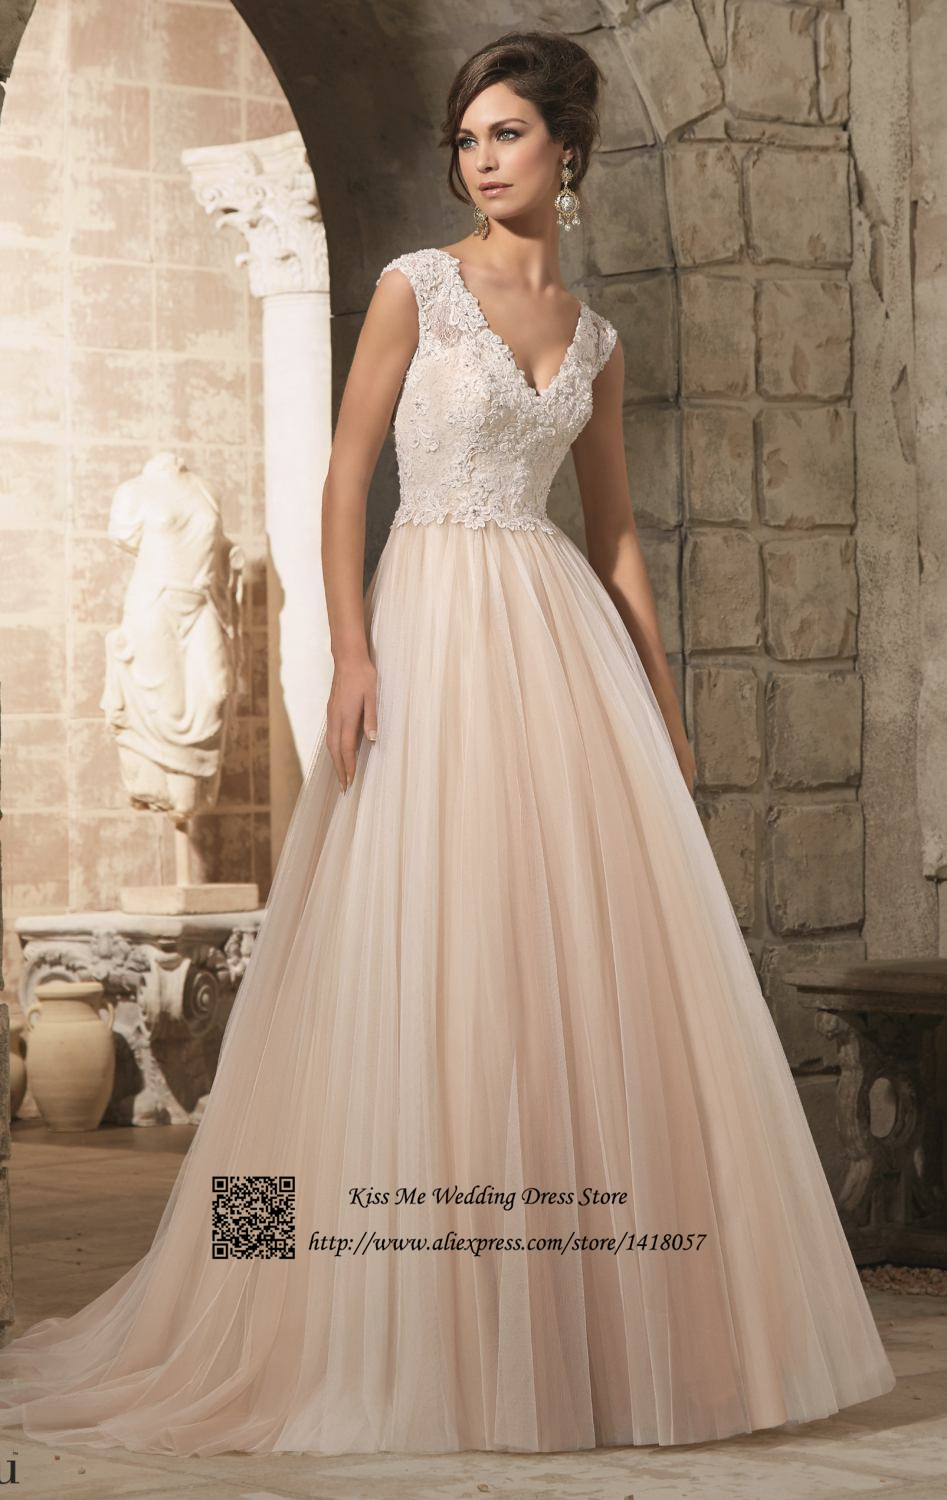 Cool wedding dresses for young: Cheap wedding dresses champagne color